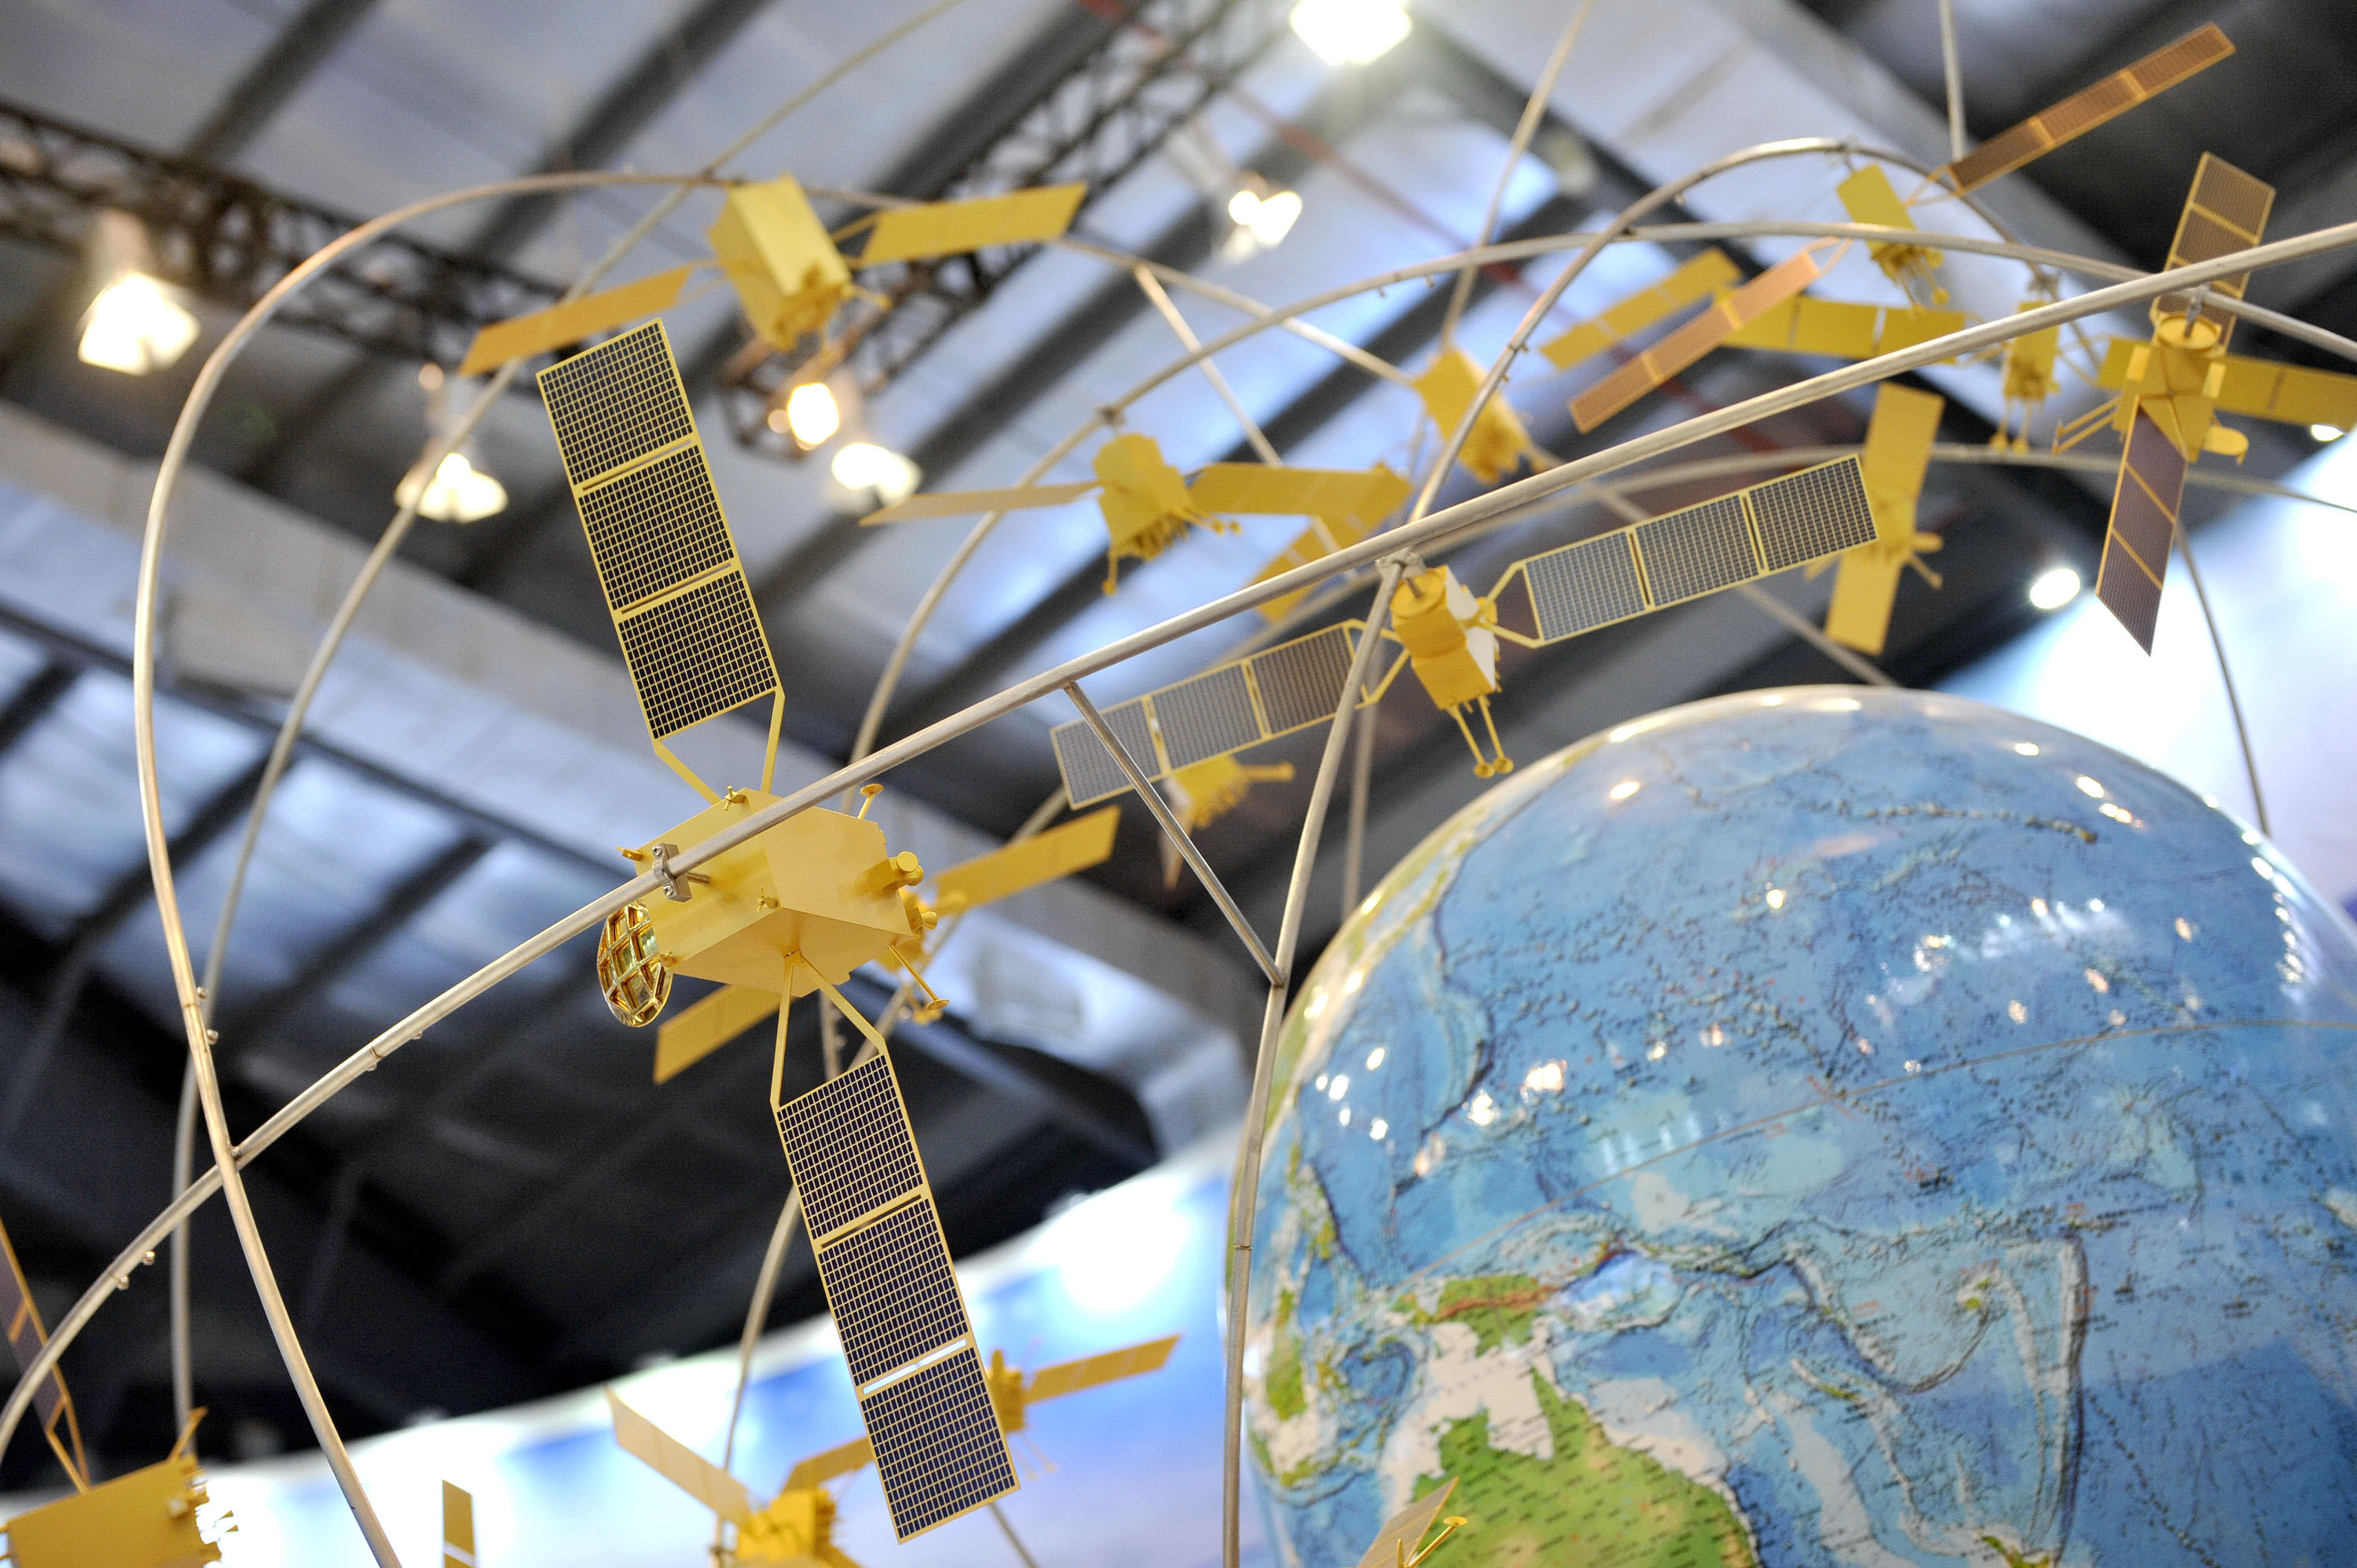 Beidou navigation system provides free service for civilian users